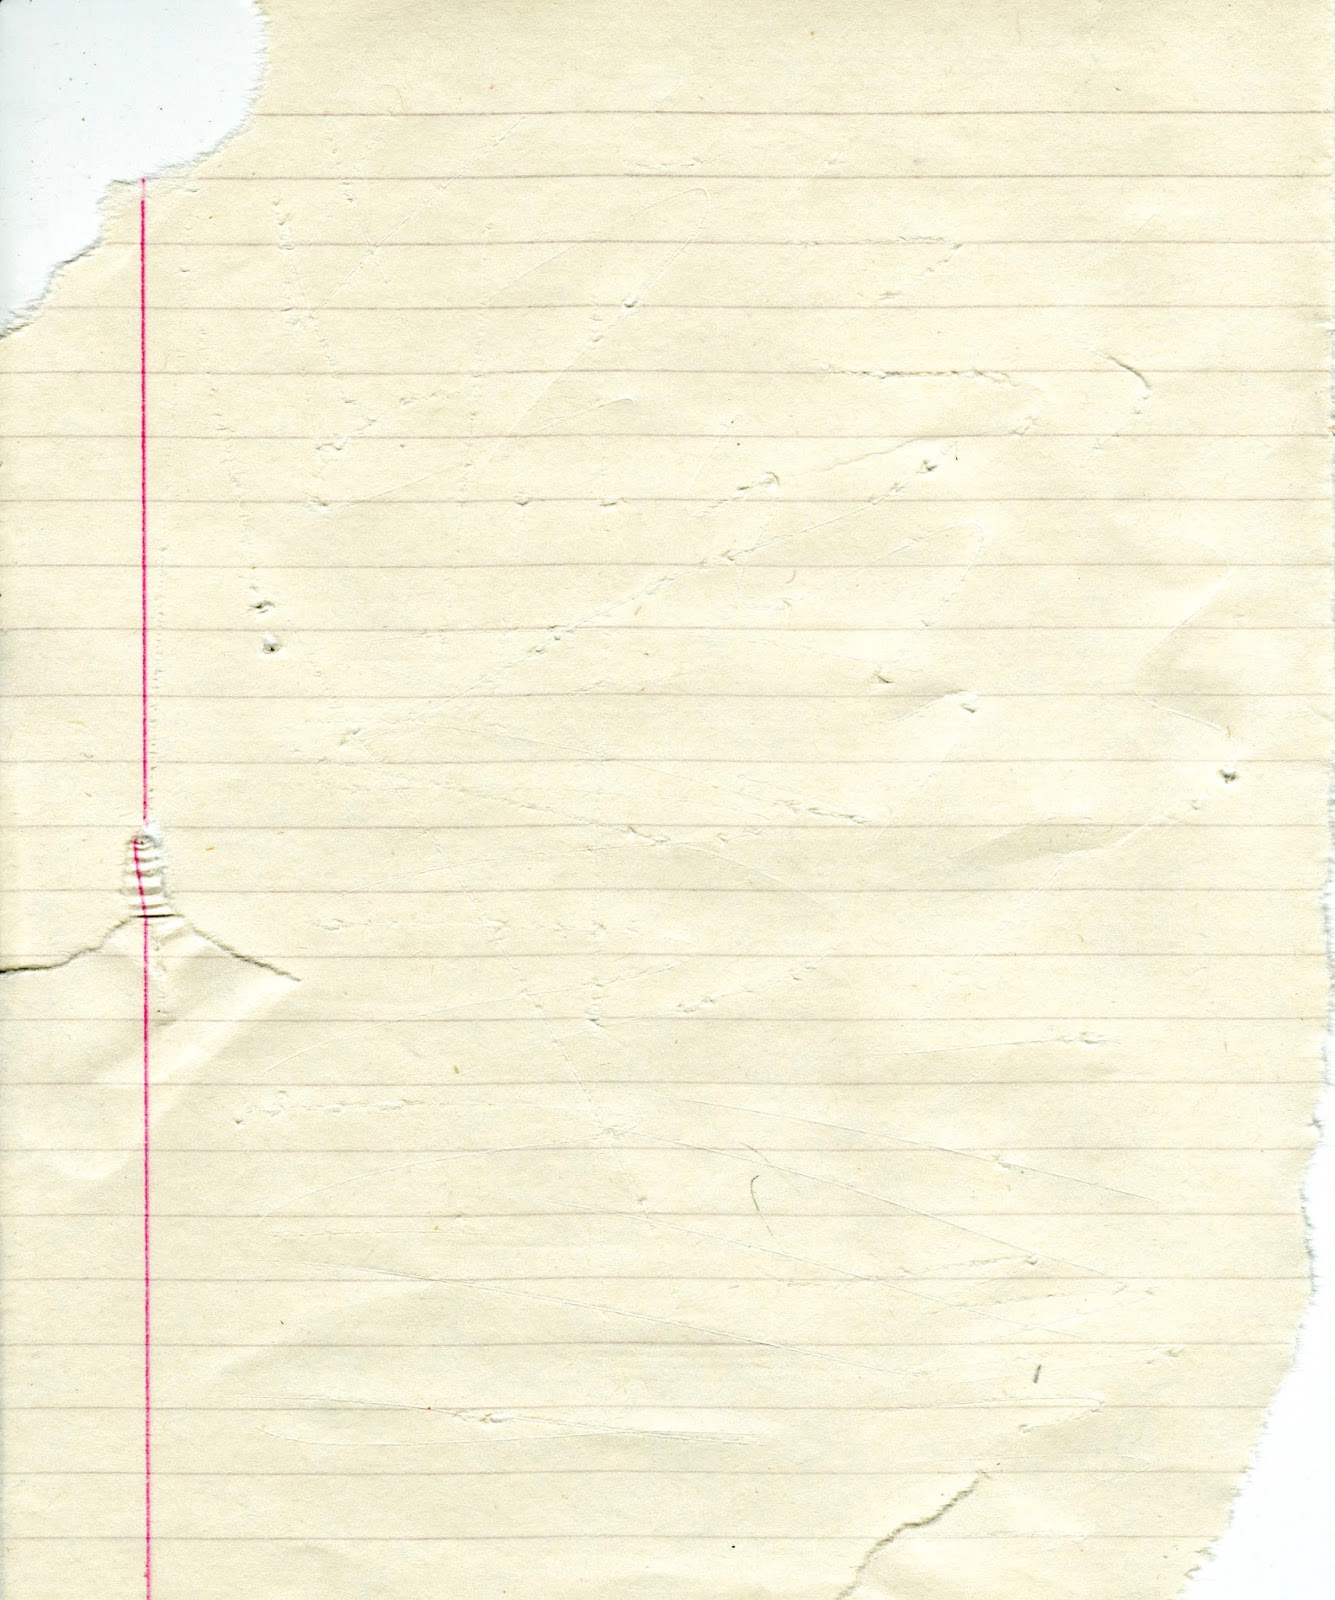 Paper grid texture background